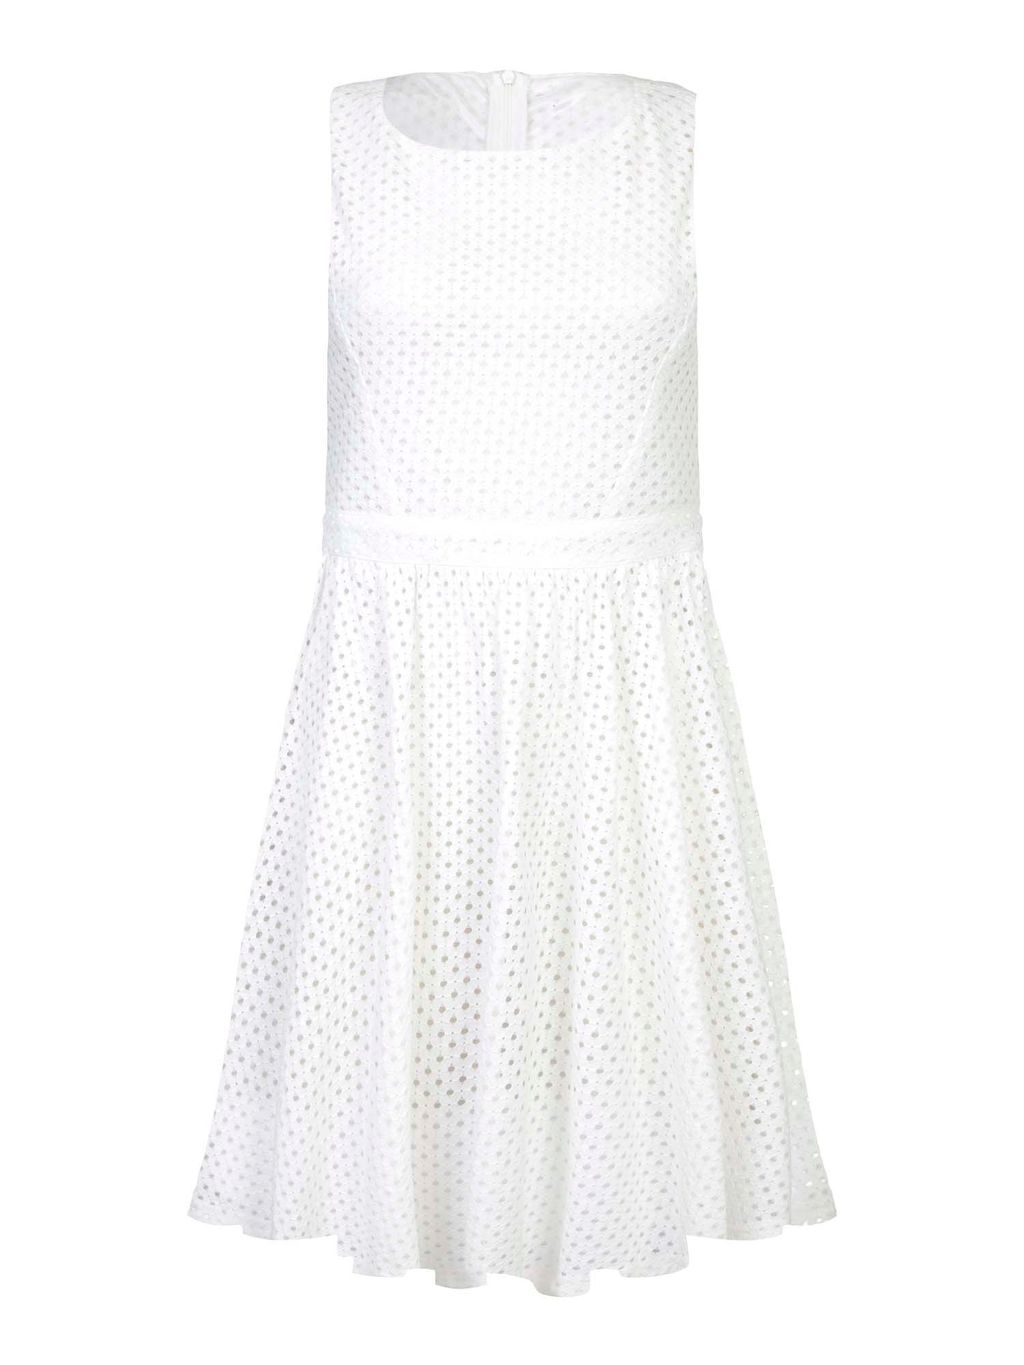 Lace Skater Dress, White - sleeve style: sleeveless; predominant colour: white; occasions: evening; length: just above the knee; fit: fitted at waist & bust; style: fit & flare; fibres: polyester/polyamide - 100%; neckline: crew; sleeve length: sleeveless; texture group: lace; pattern type: fabric; pattern size: standard; pattern: patterned/print; season: s/s 2016; wardrobe: event